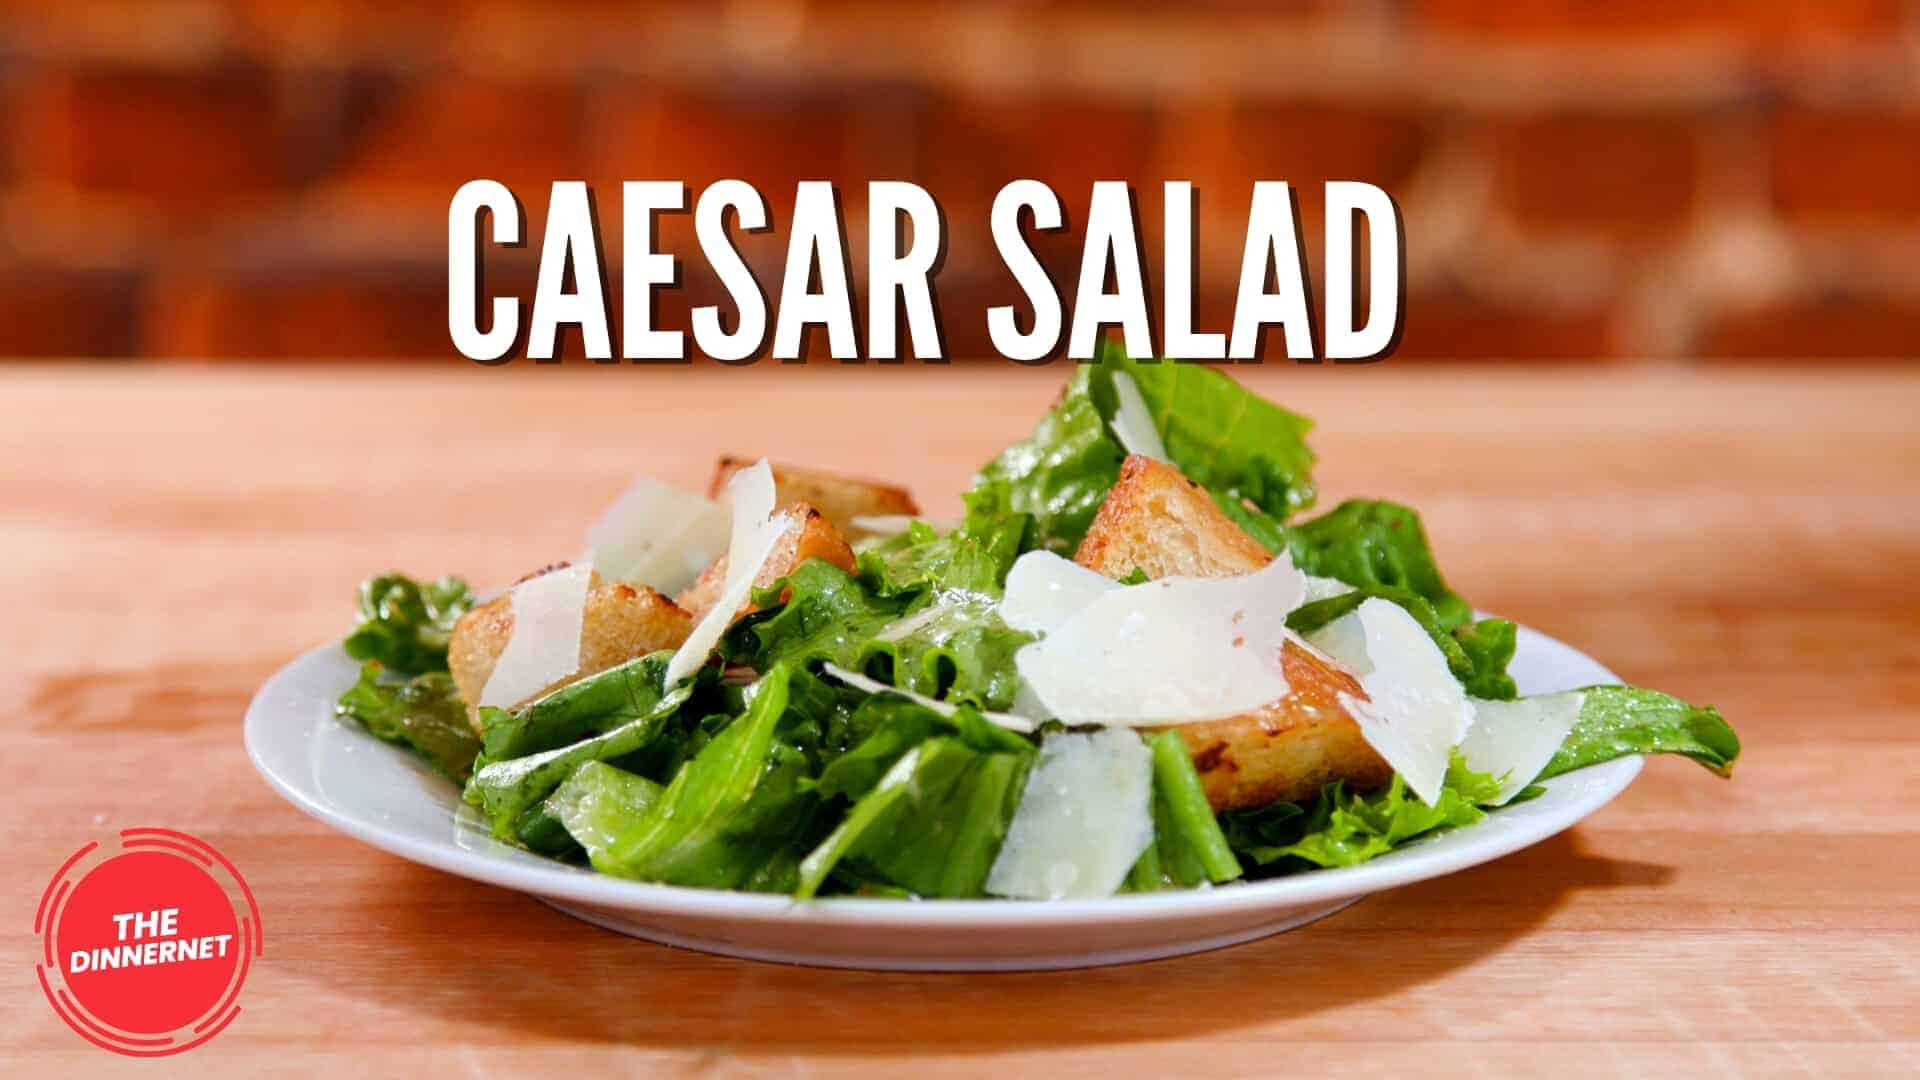 The Dinnernet Caesar Salad